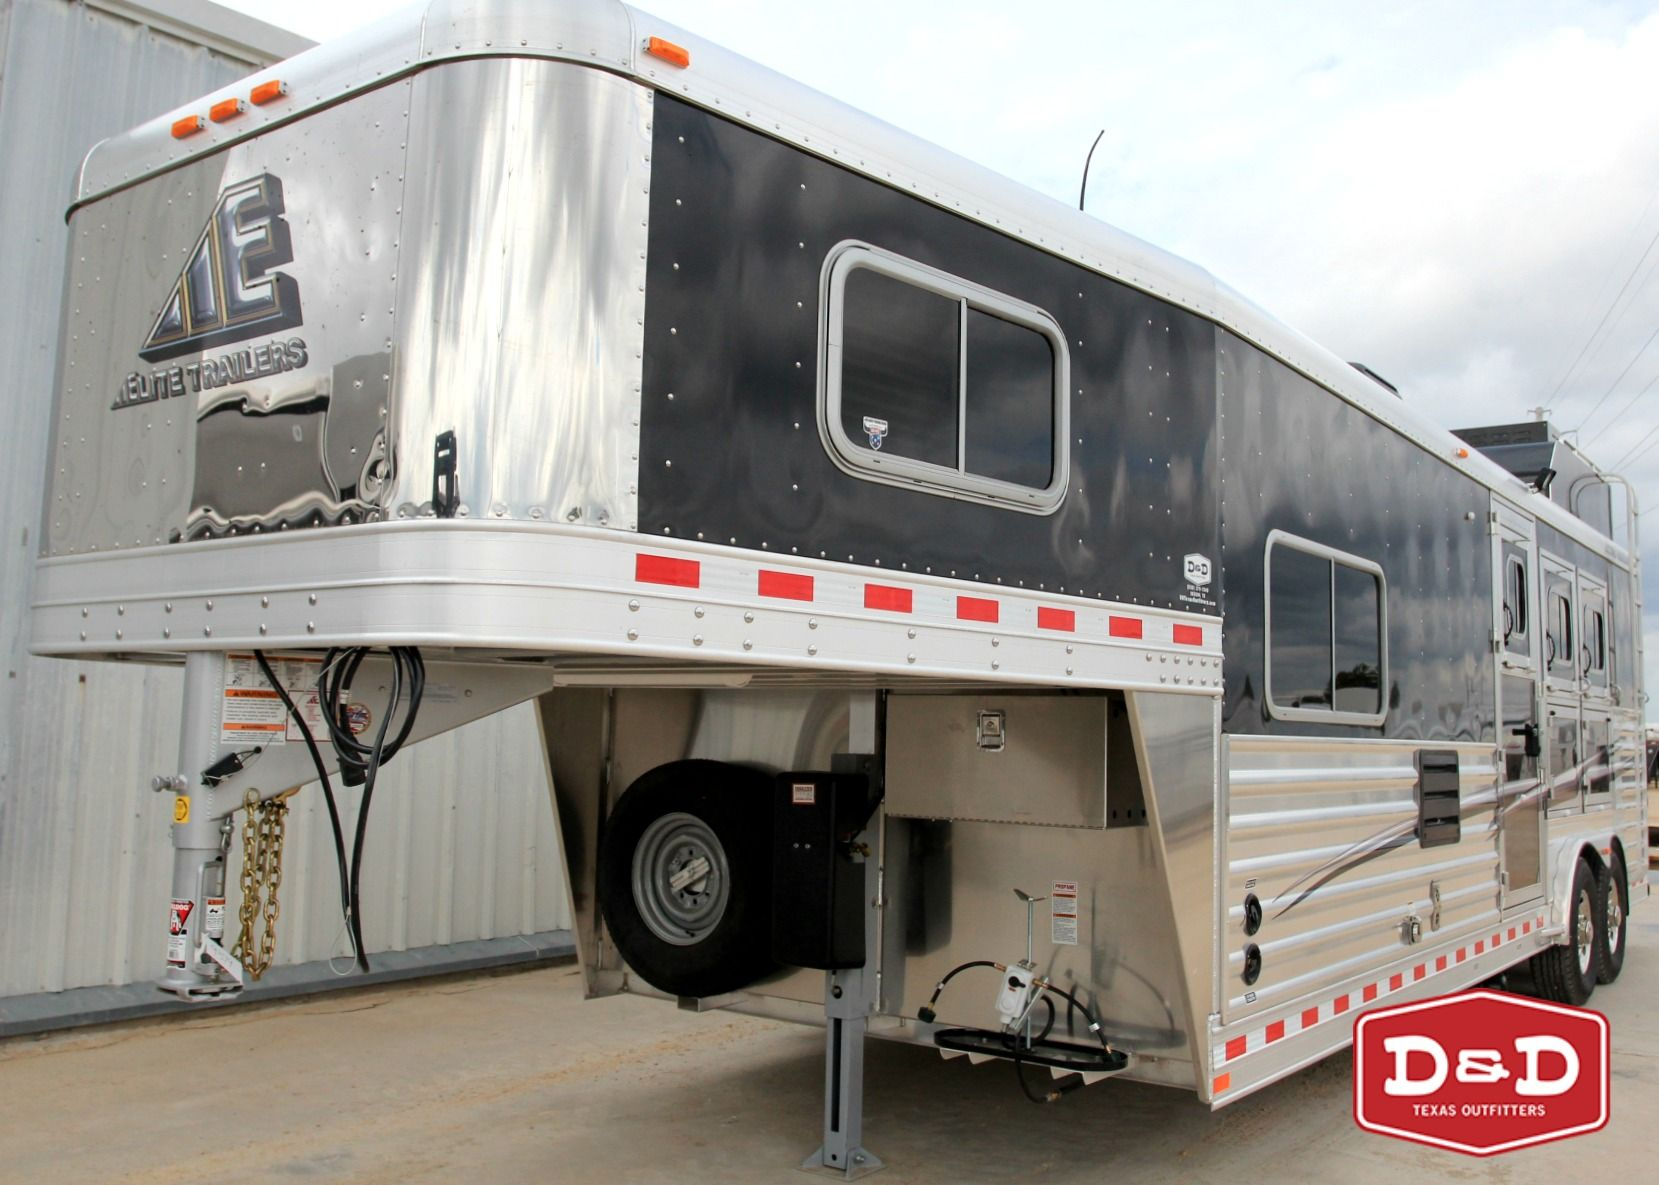 https://www.ddfarmranchtrailers.com/ 450 in-stock trailers!! (830) 379-7340